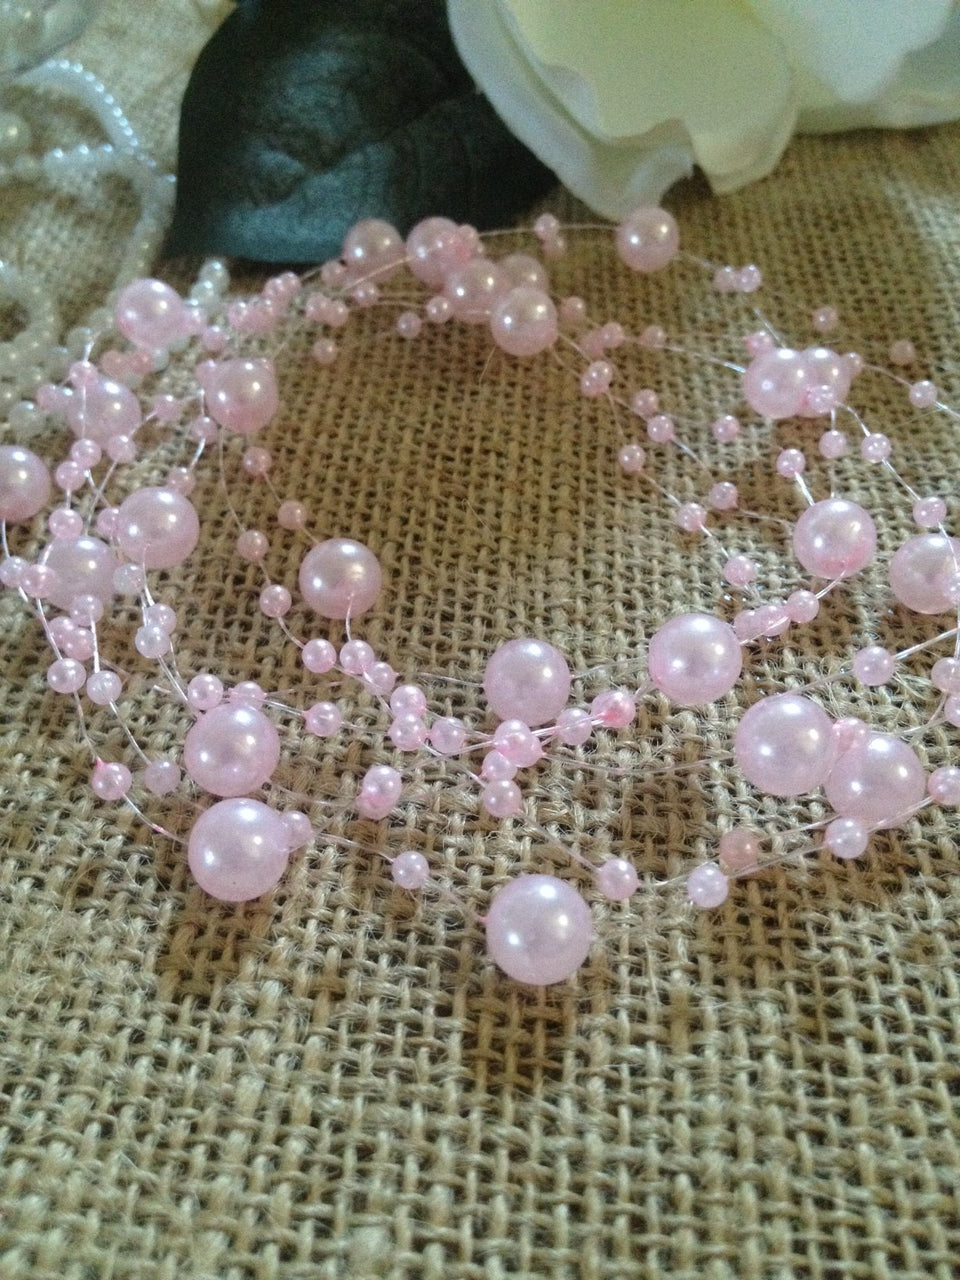 8mm & 3mm Light Pink Pearl Bead Garland -Wedding Decoration, Special Events, Trims  Available in: 1yd/3yd/5yd/10yd/1roll